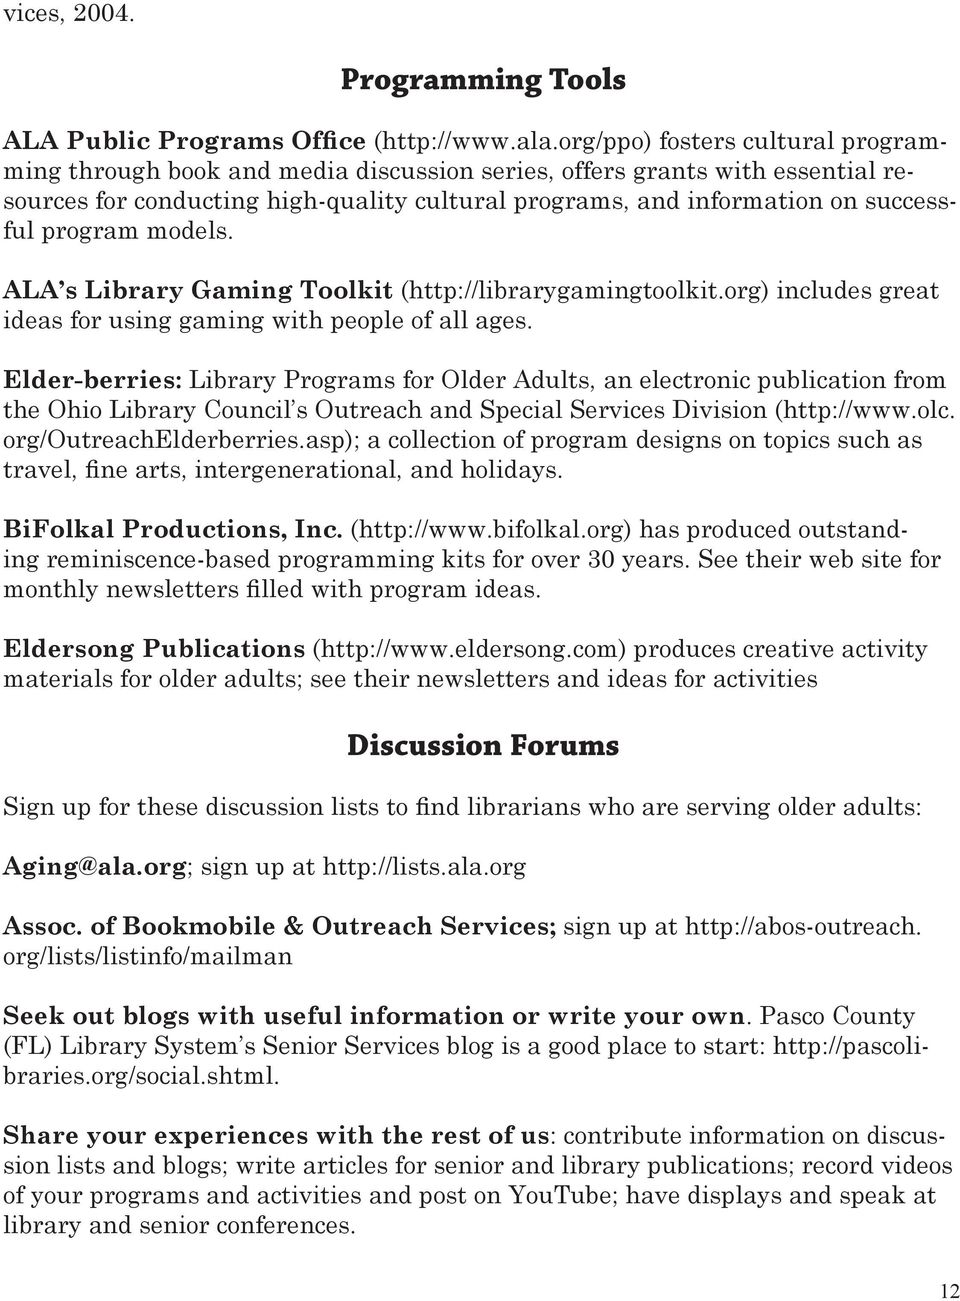 program models. ALA s Library Gaming Toolkit (http://librarygamingtoolkit.org) includes great ideas for using gaming with people of all ages.